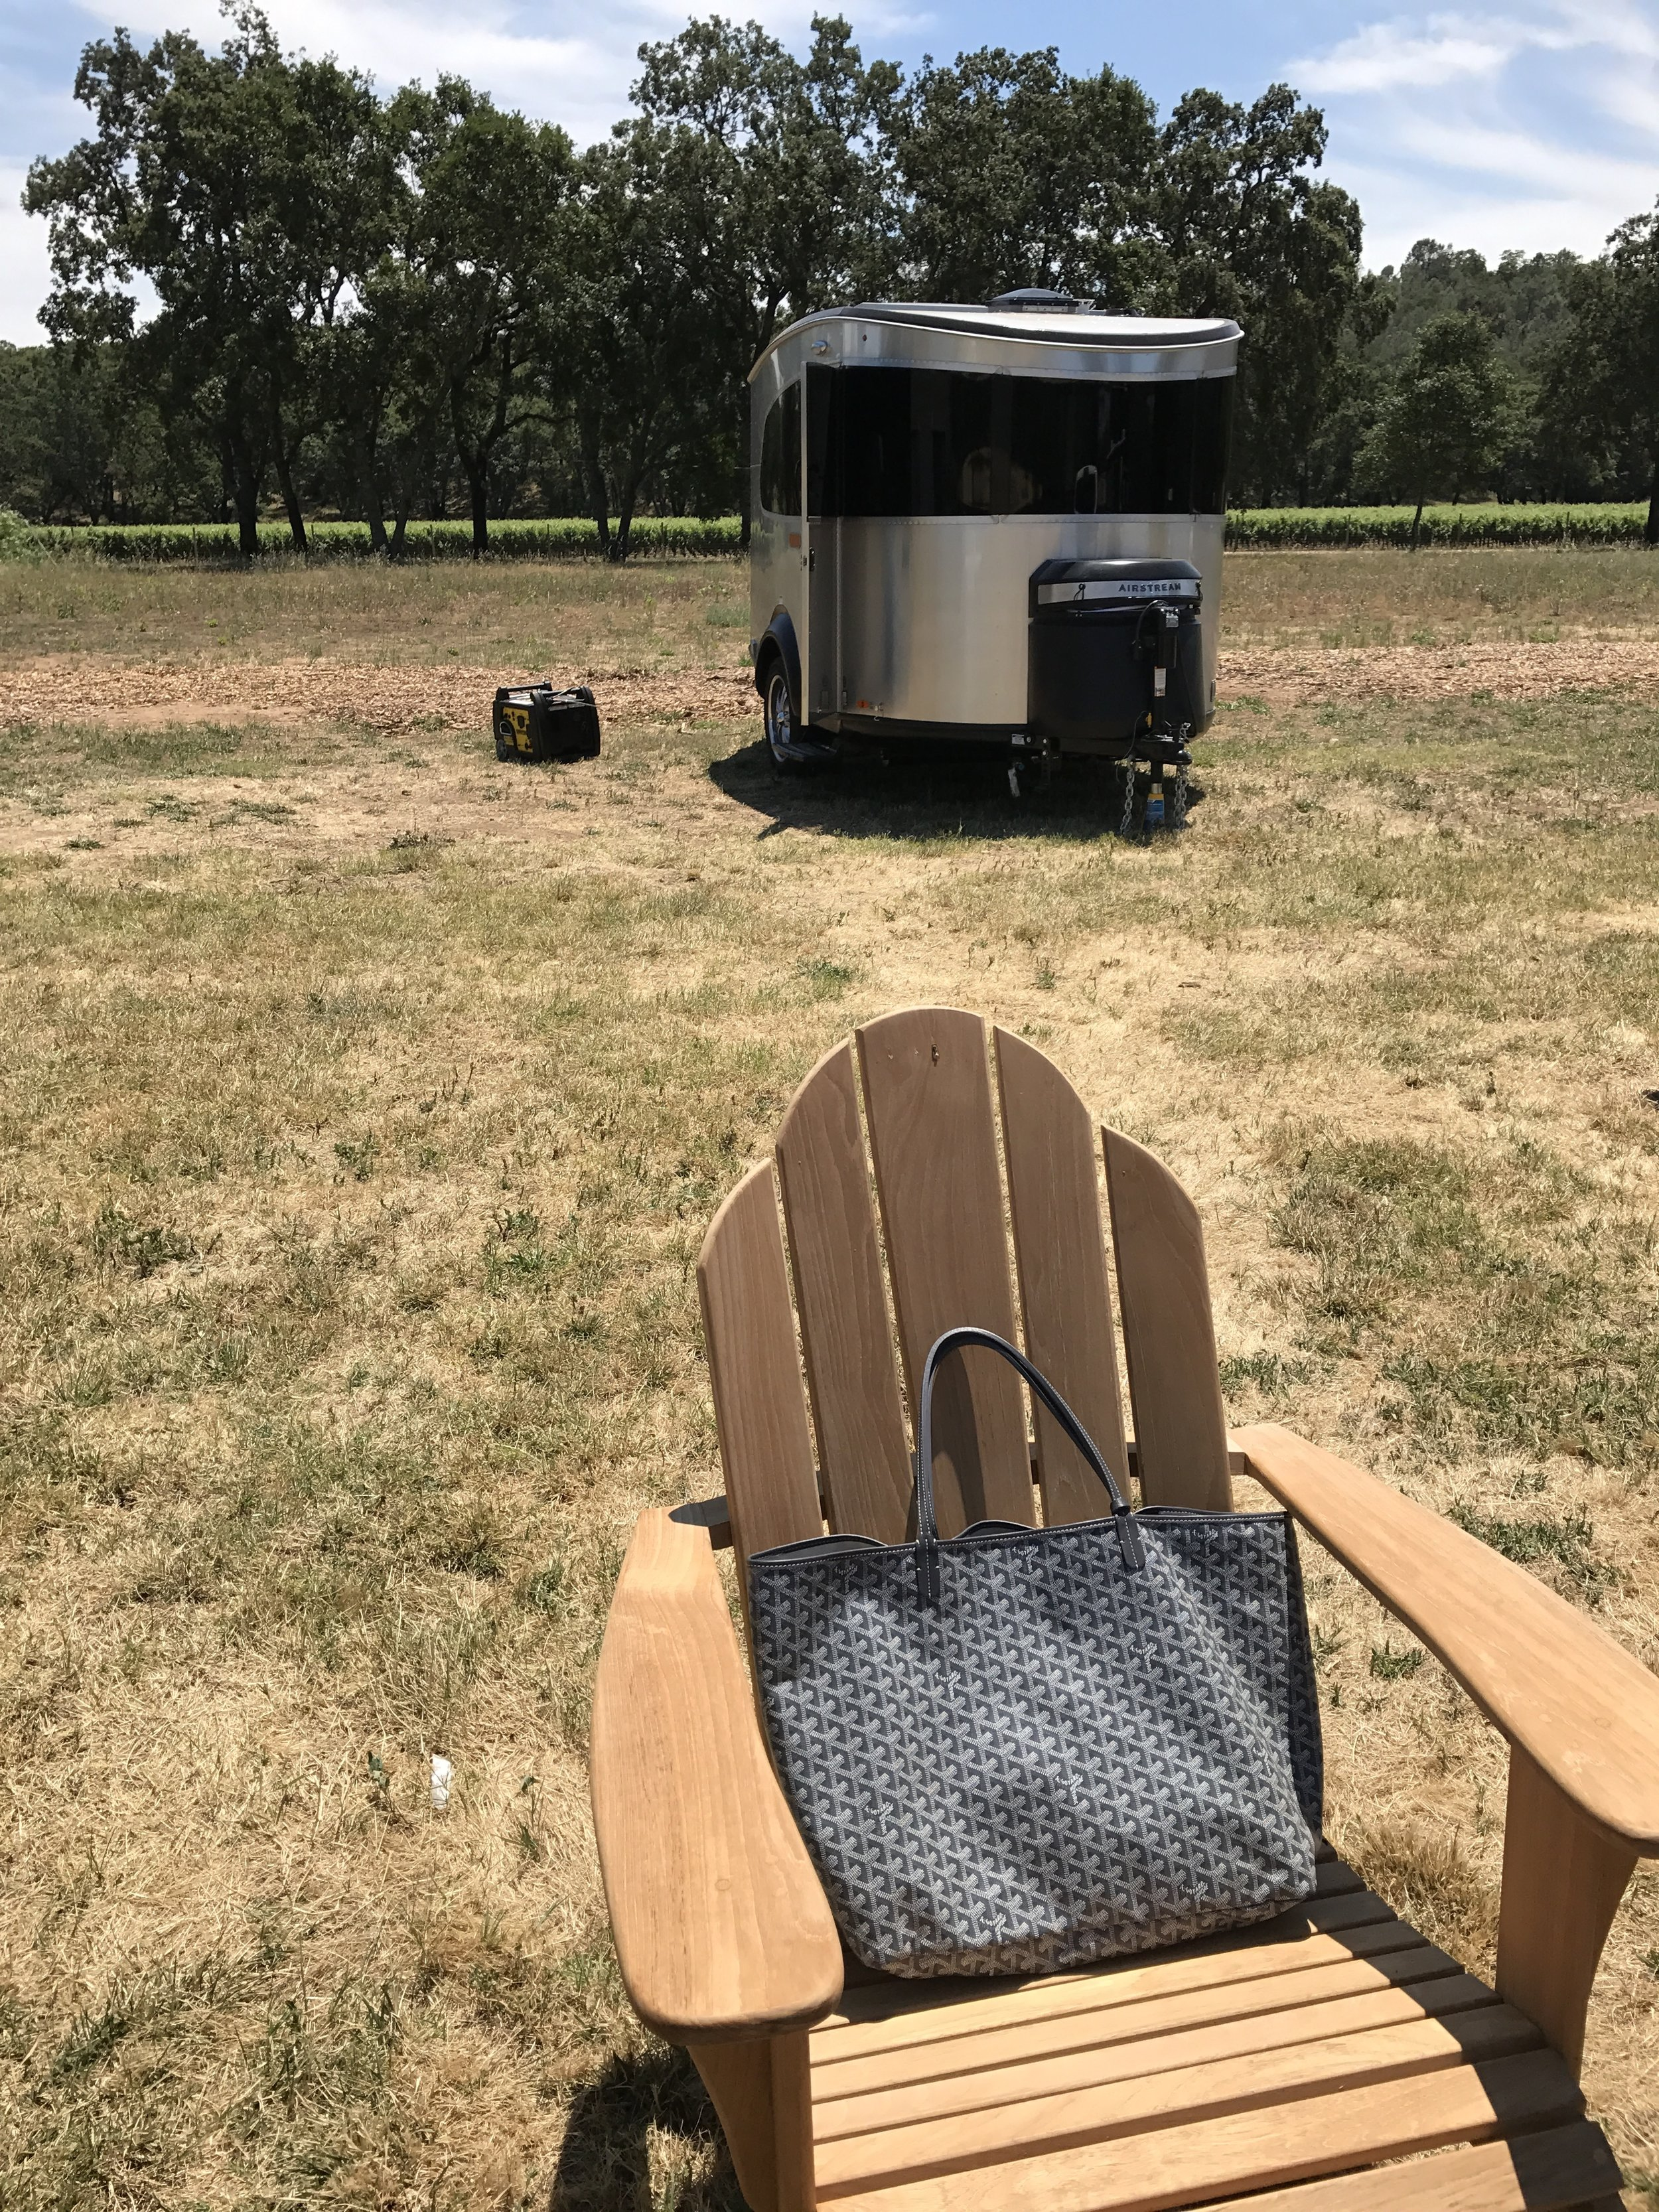 My two loves: Airstreams and bags